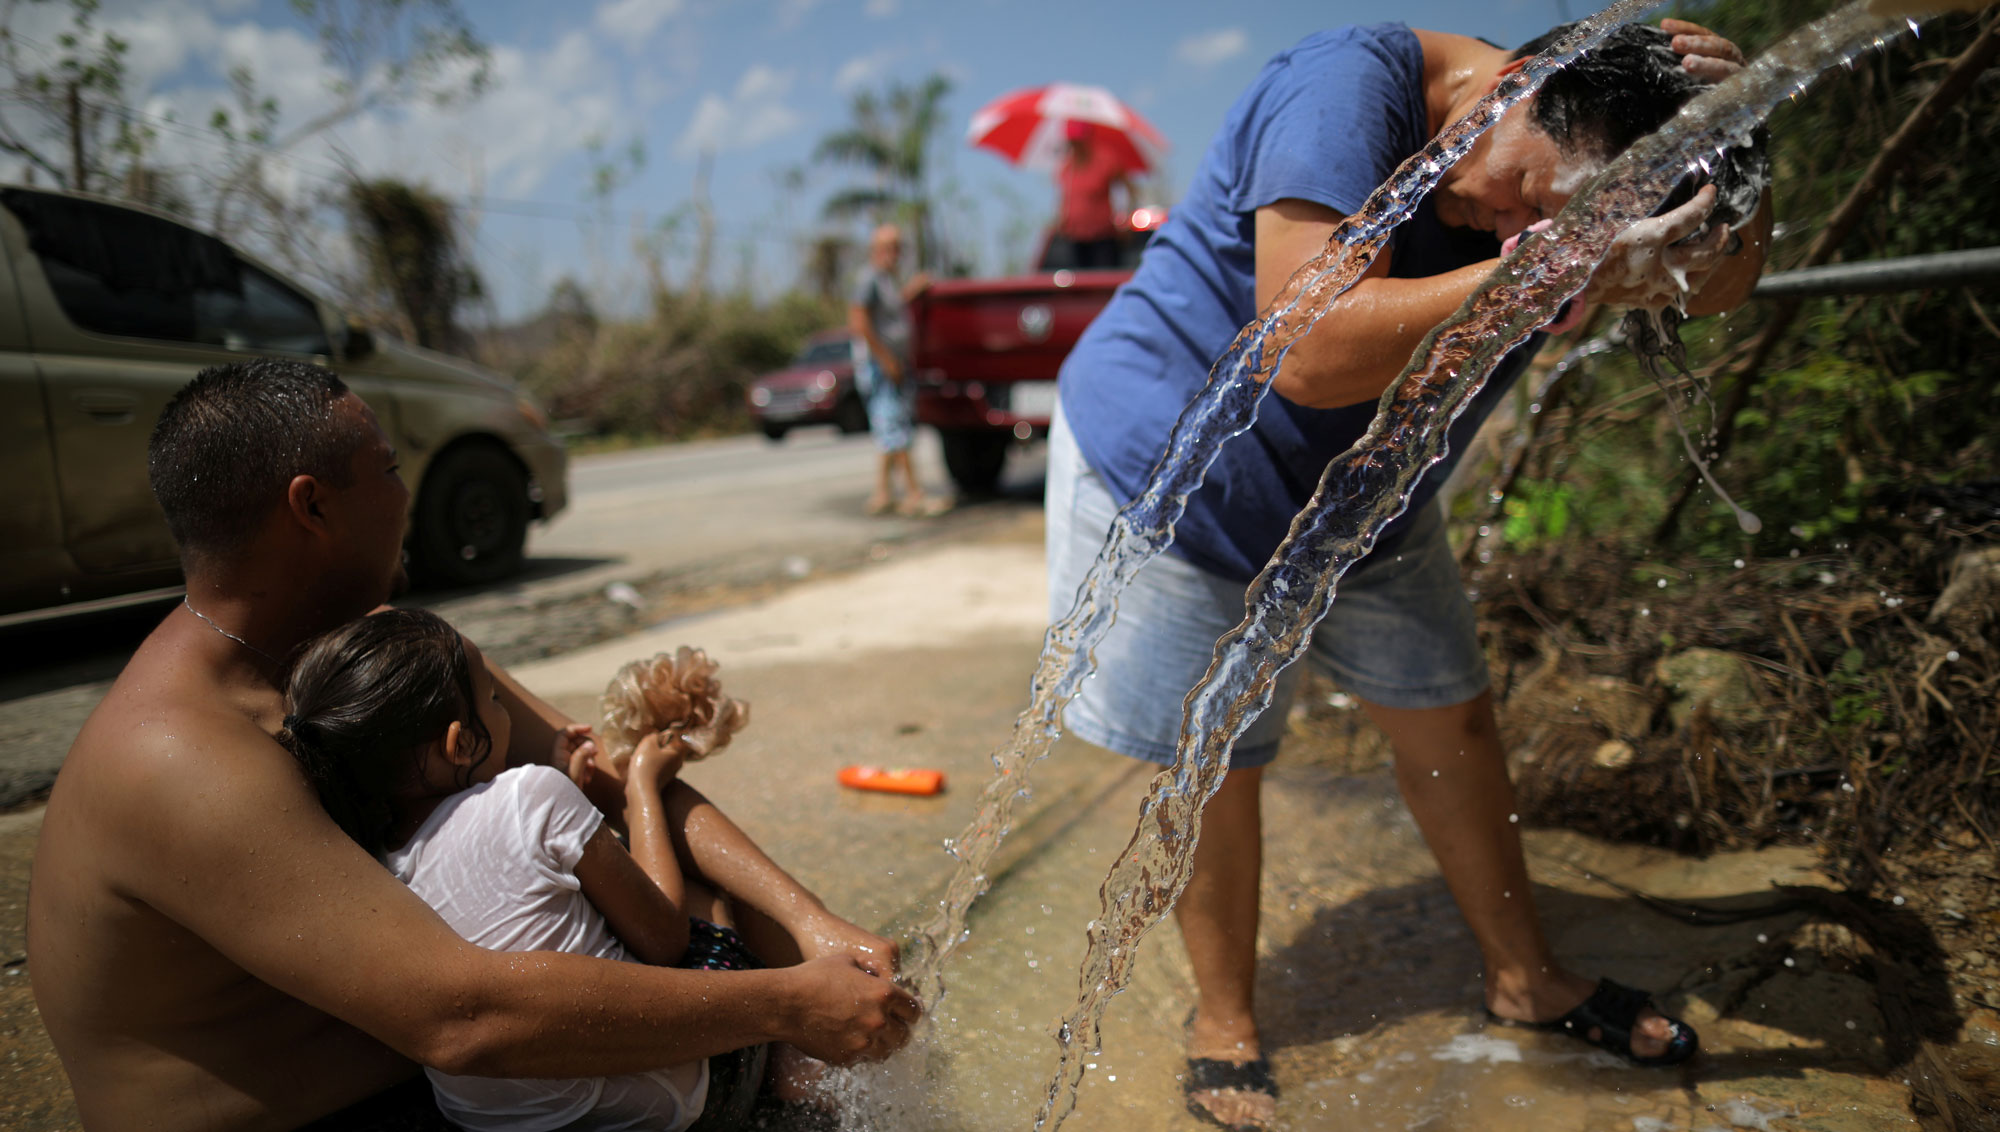 Water falls from a pipe onto the street. A woman in the background is bent at the waist and washes her hair in the running water, while a man holds a child and watches the woman.